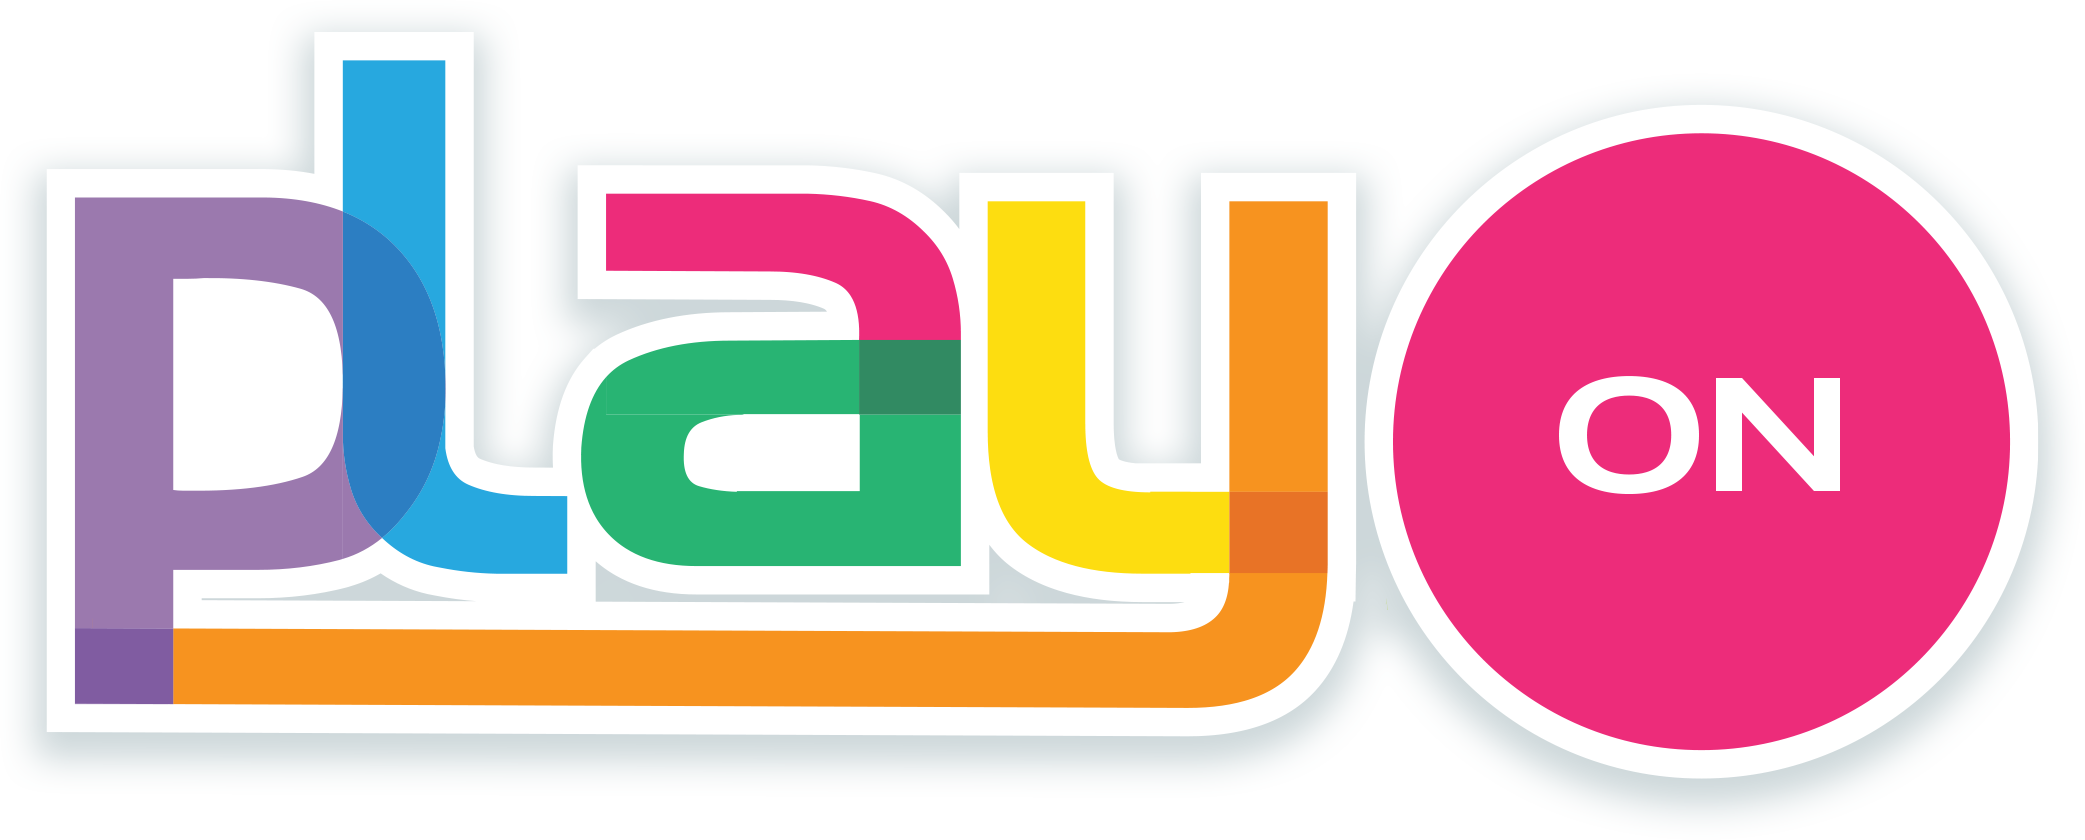 PlayOn logo design